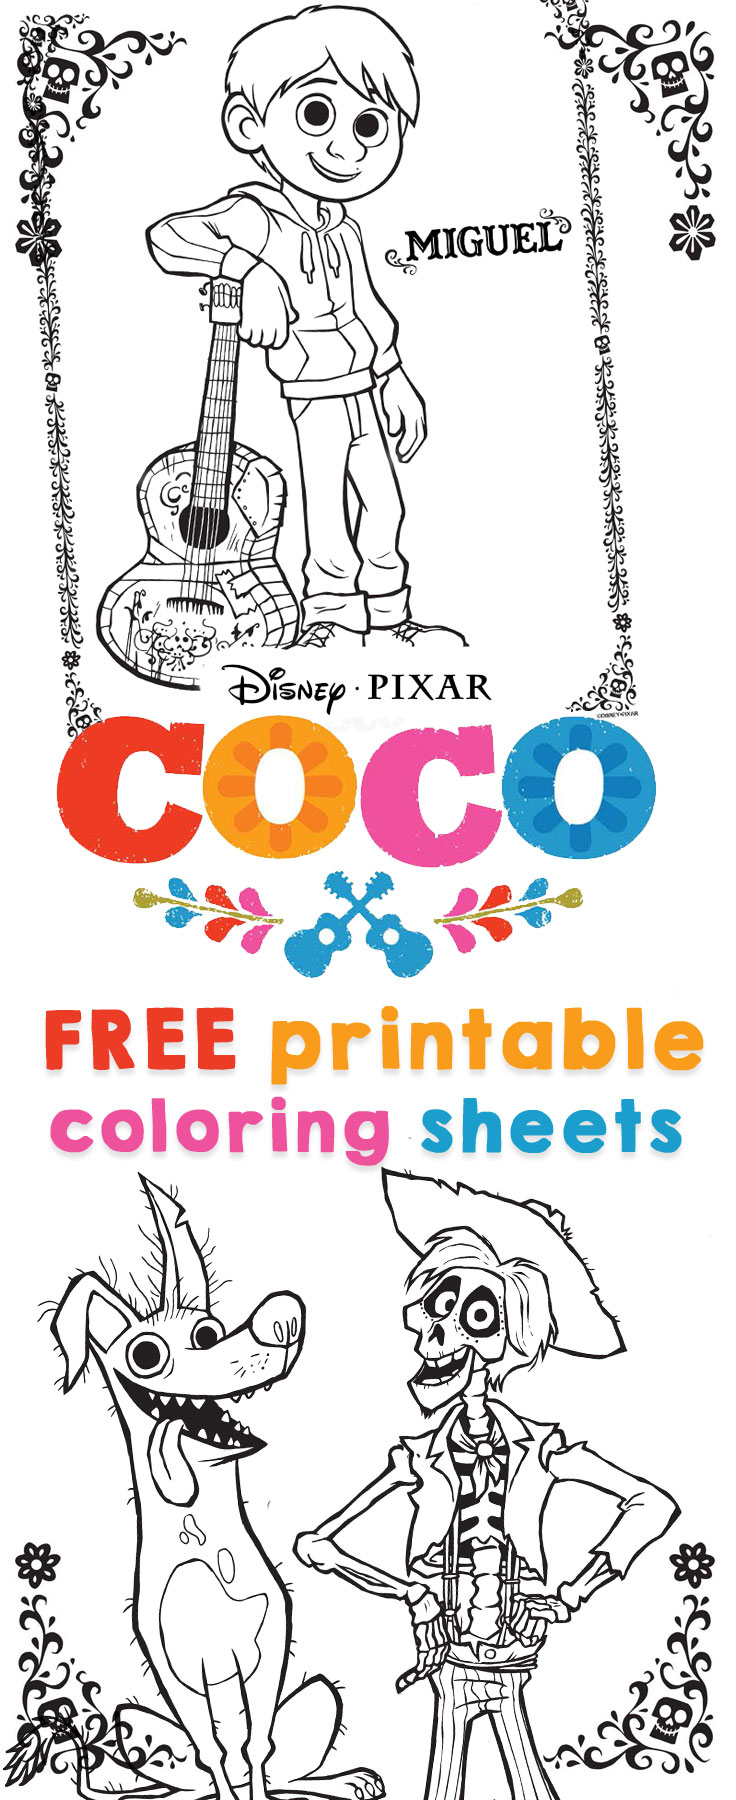 COCO Coloring sheets and activity sheets from Disney Pixar!